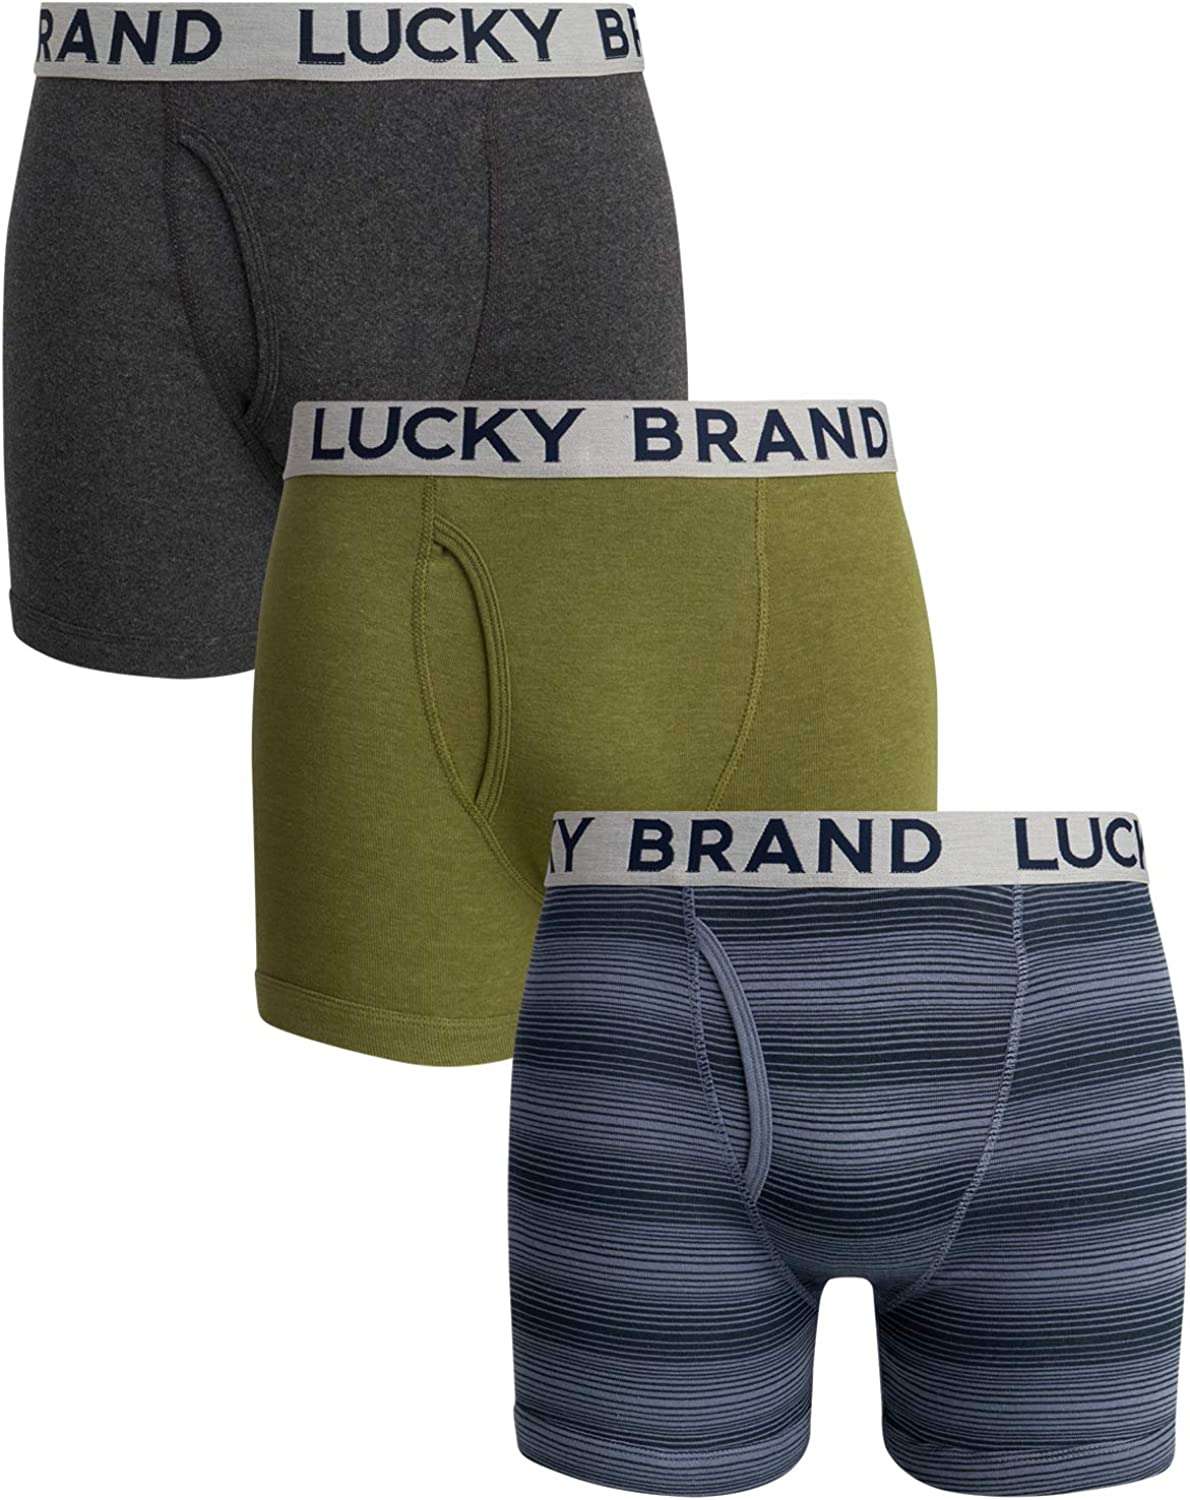 Lucky Brand Men's Cotton Boxer Briefs (3 Pack)